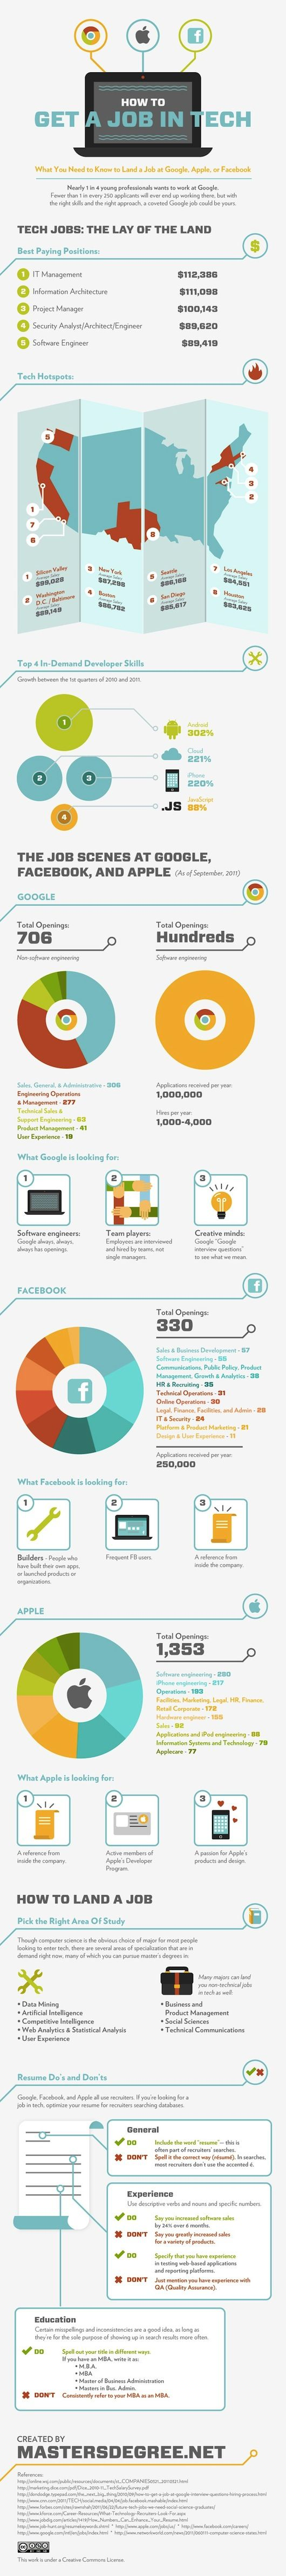 How to get a tech job infographic. We have an office in #8 Houston as well as Dallas and Fort Worth. Submit your resume at www.Insourcegroup.com/submit-resume and let us find your #tech #job for you!